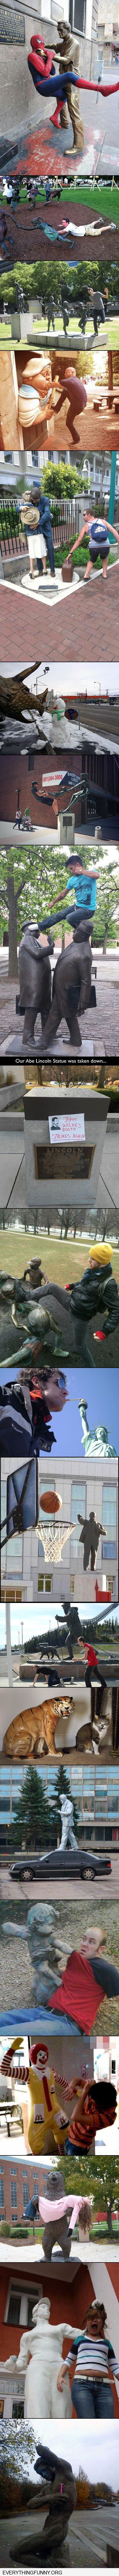 funny captions fun with statues